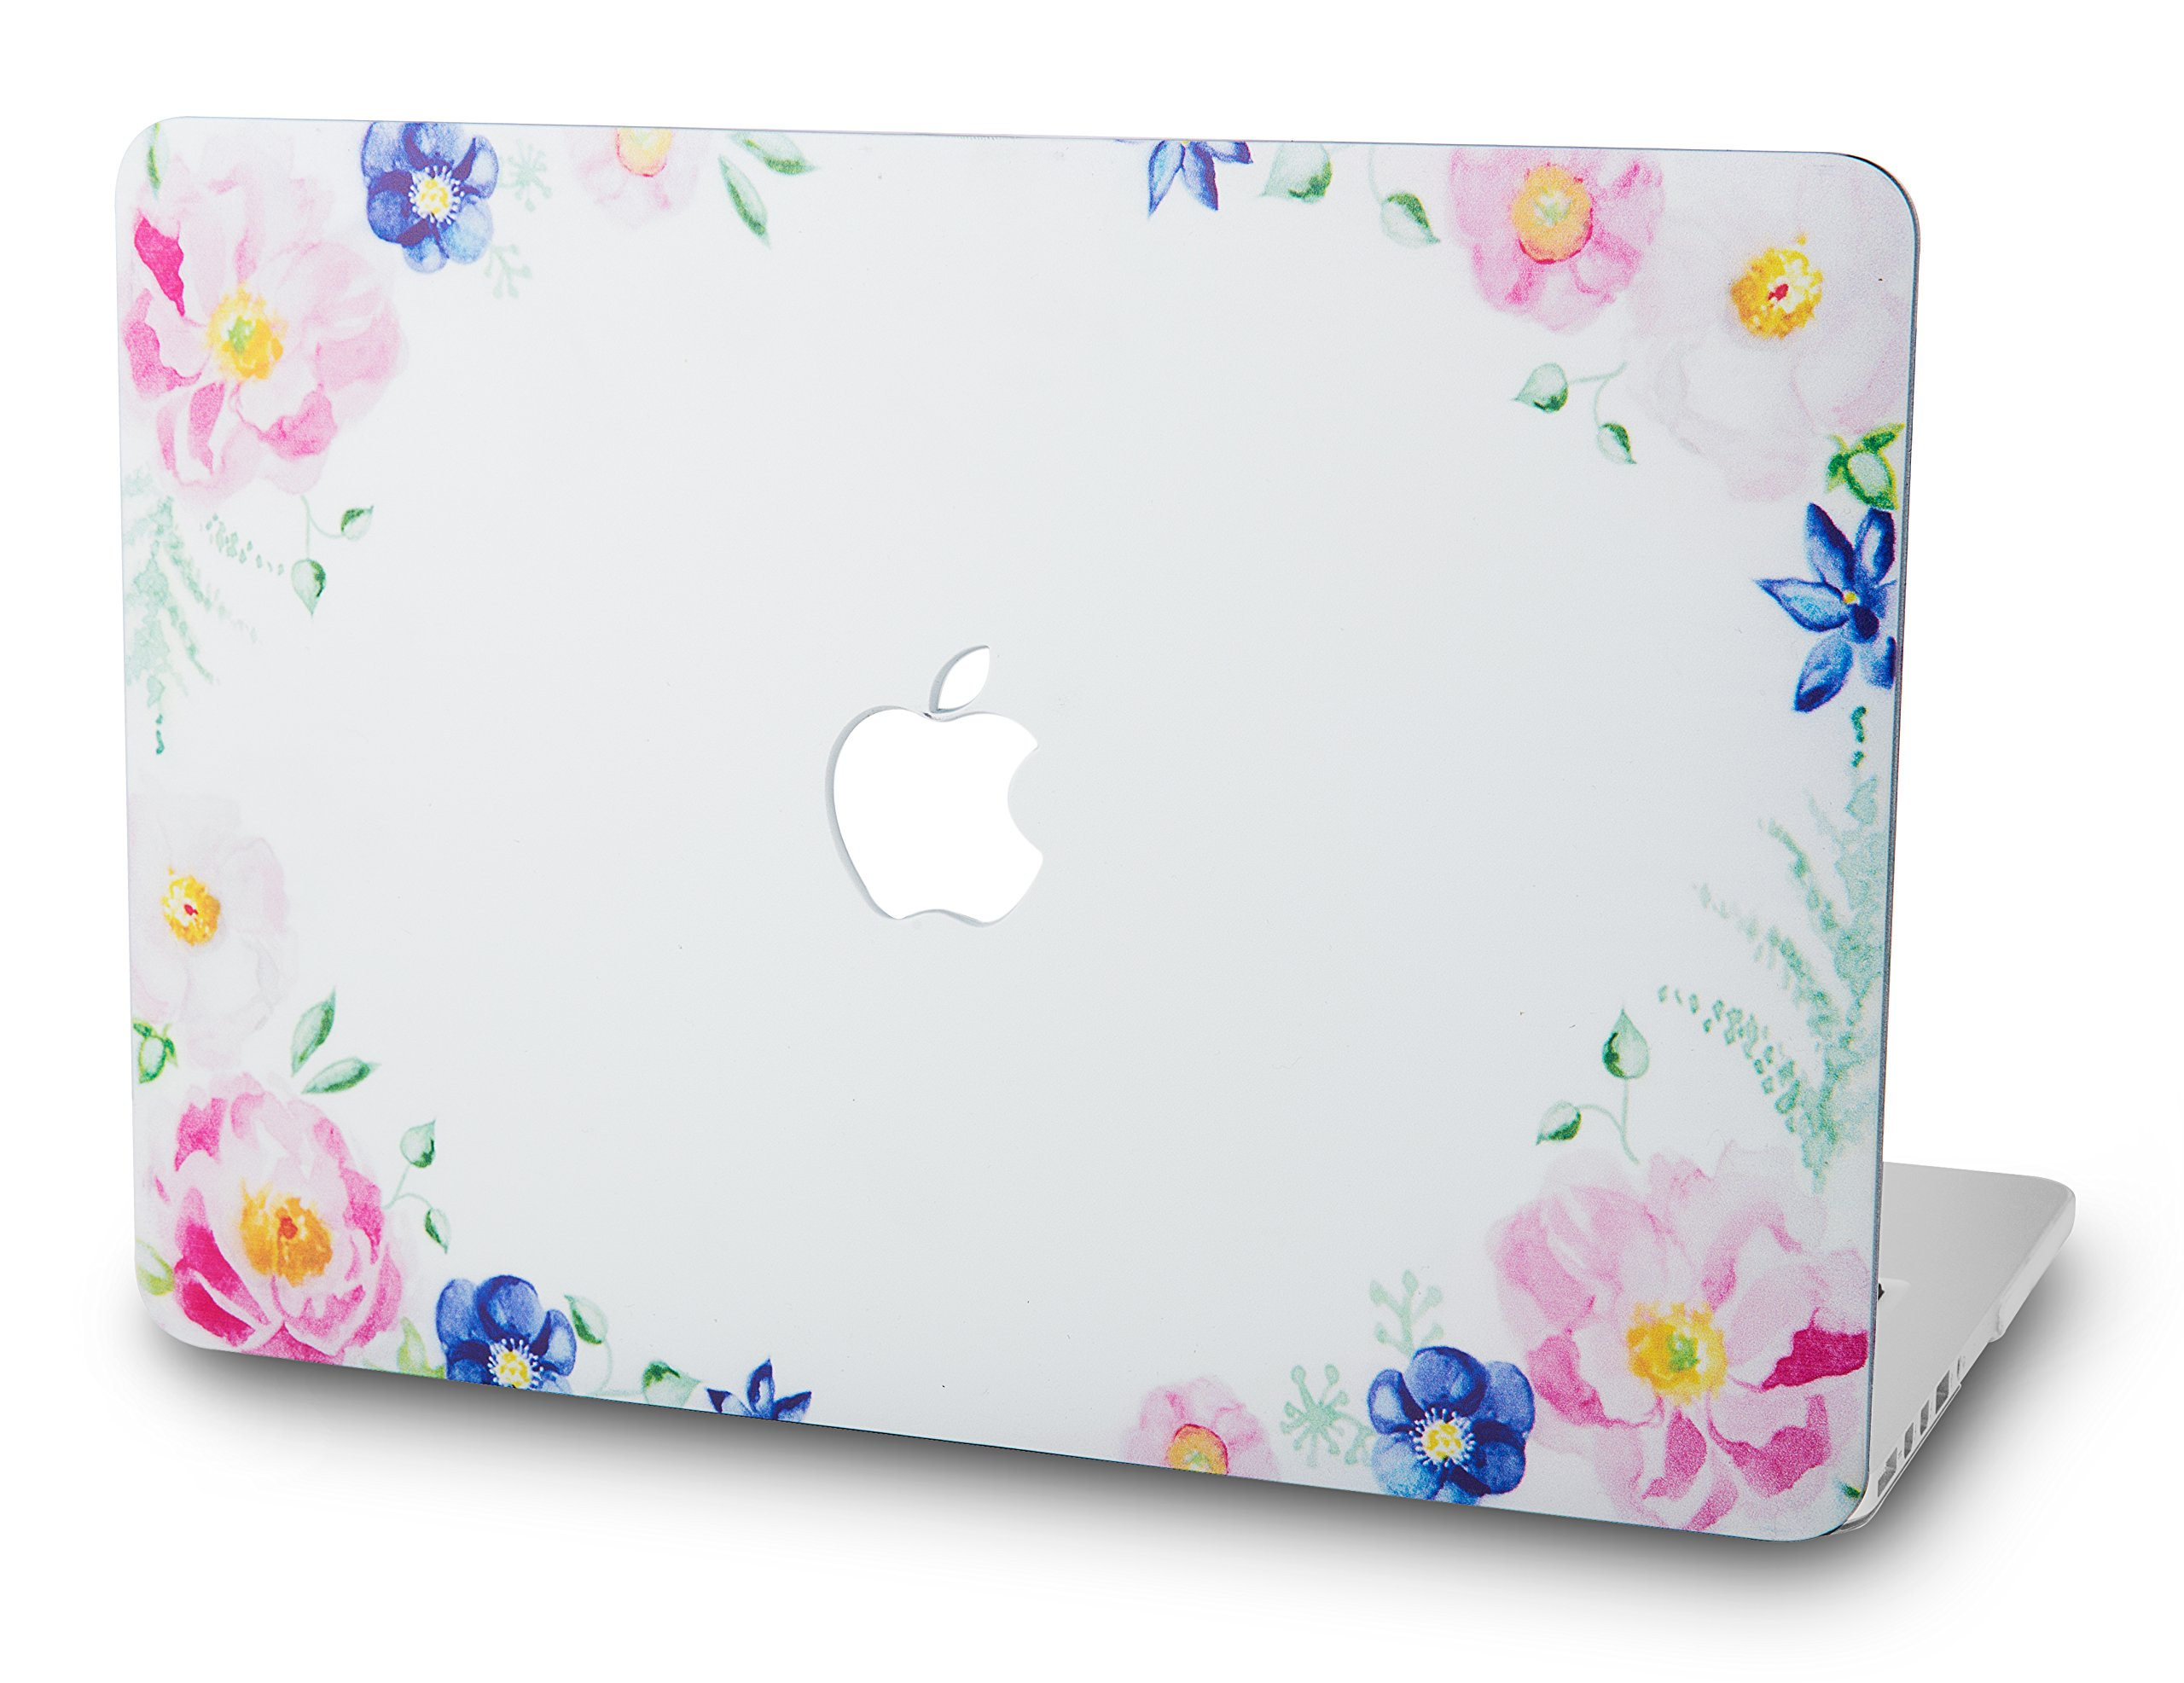 KECC Laptop Case for MacBook Air 13 Inch Plastic Case Hard Shell Cover A1466/A1369 (Flower 4)